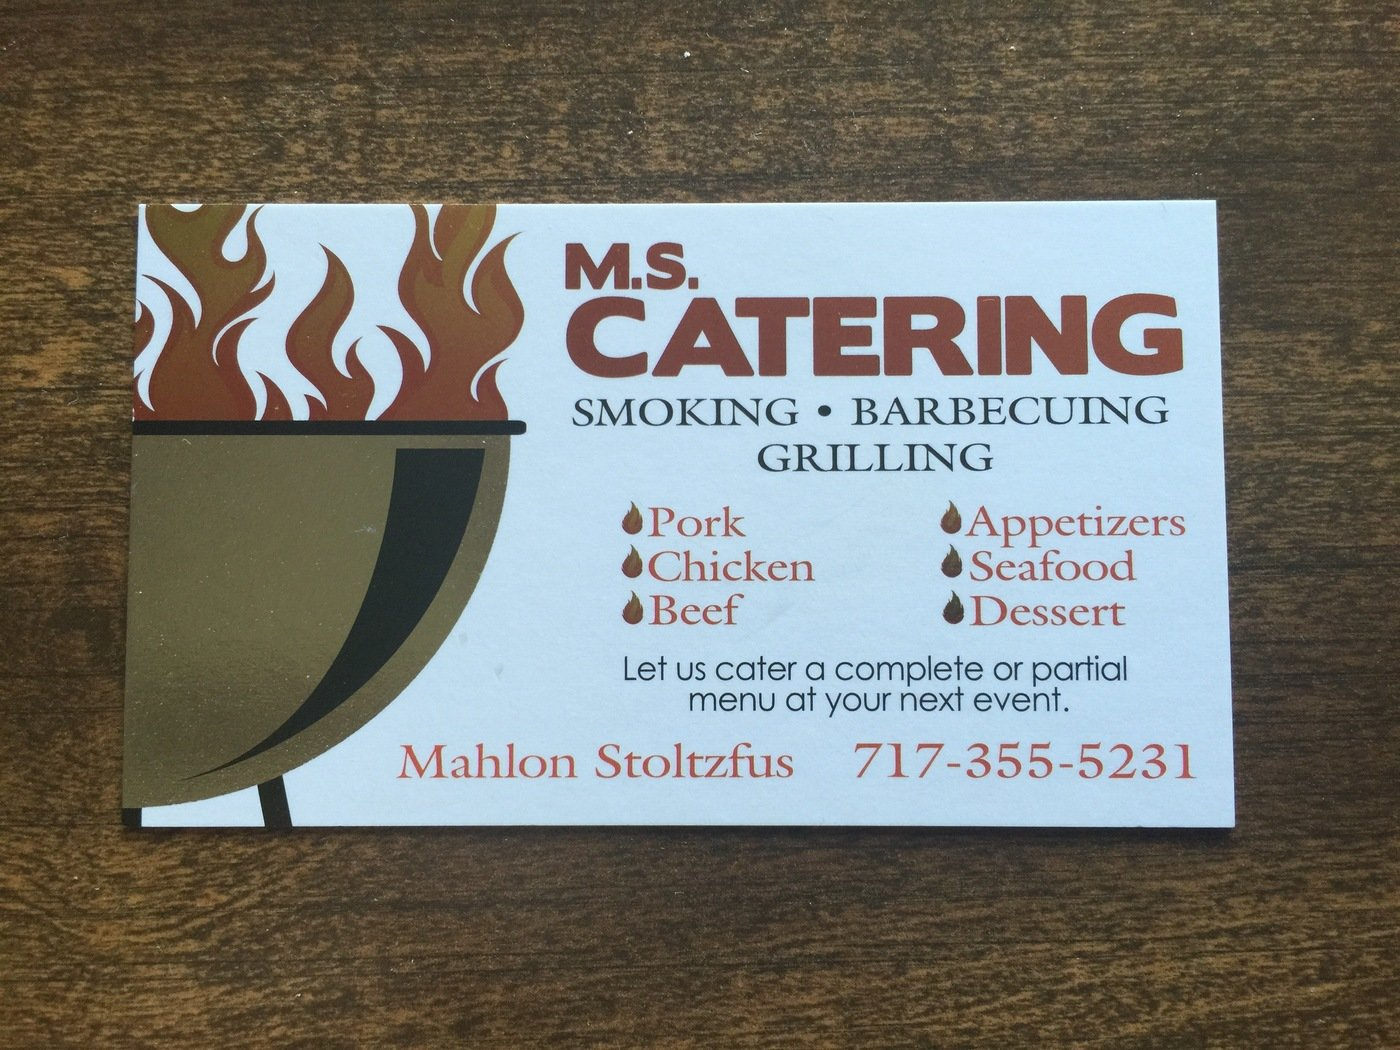 M.S. Catering Business Card by Patrick Pokrop at Coroflot.com